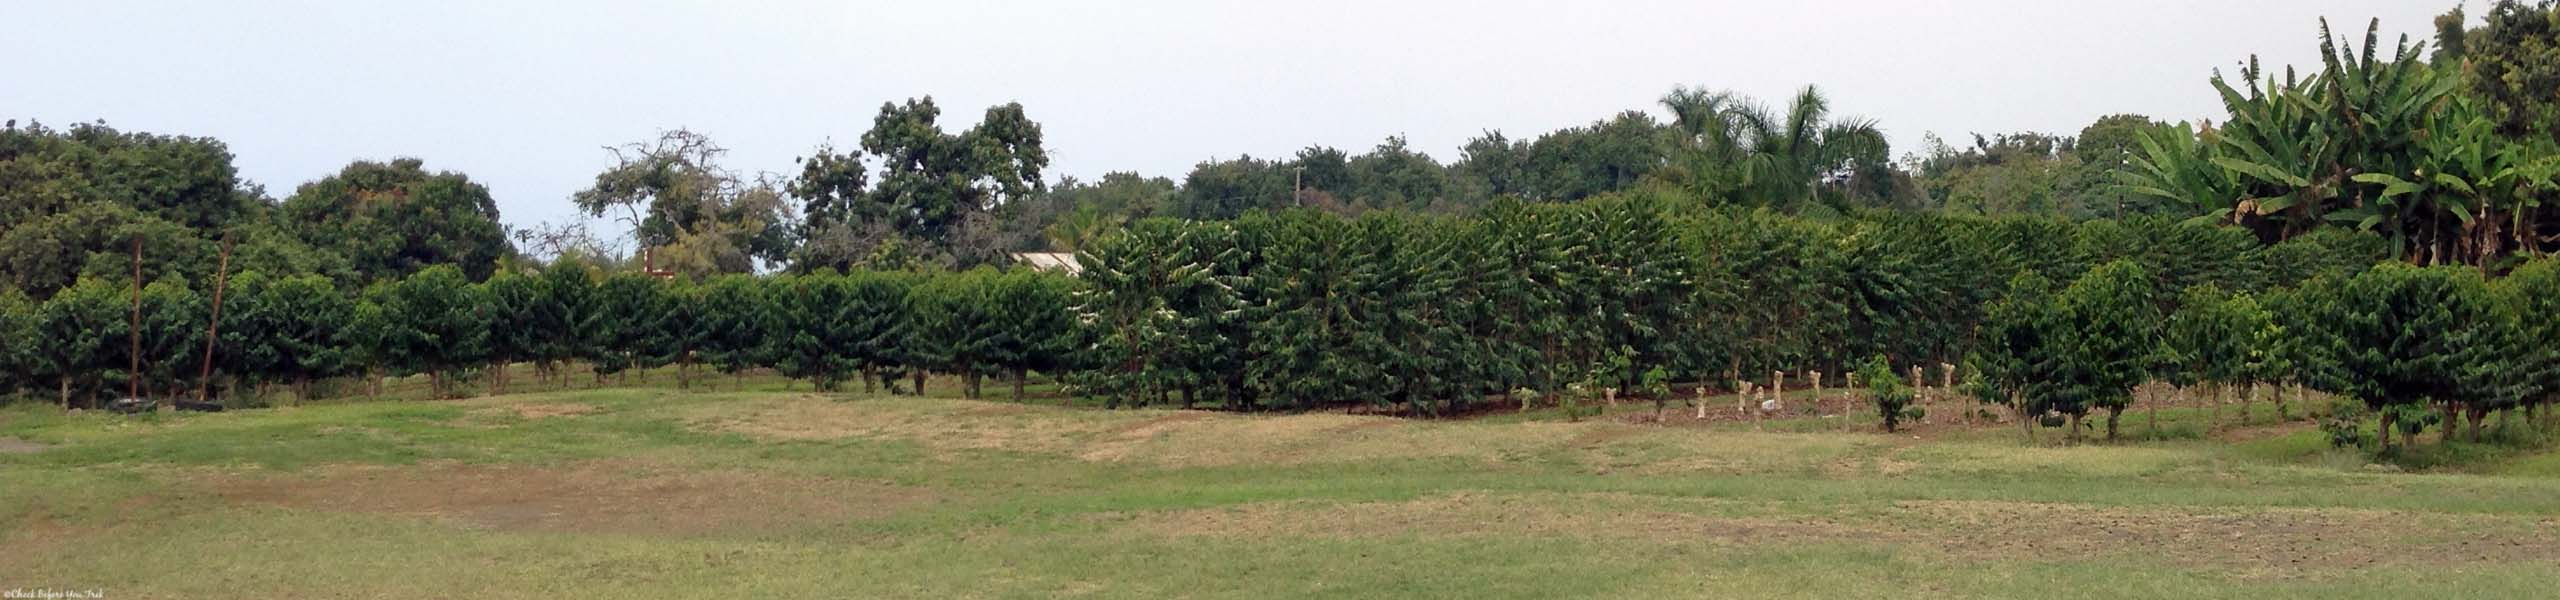 Rows of coffee plants at Greenwell Farms - Kealakekua, HI